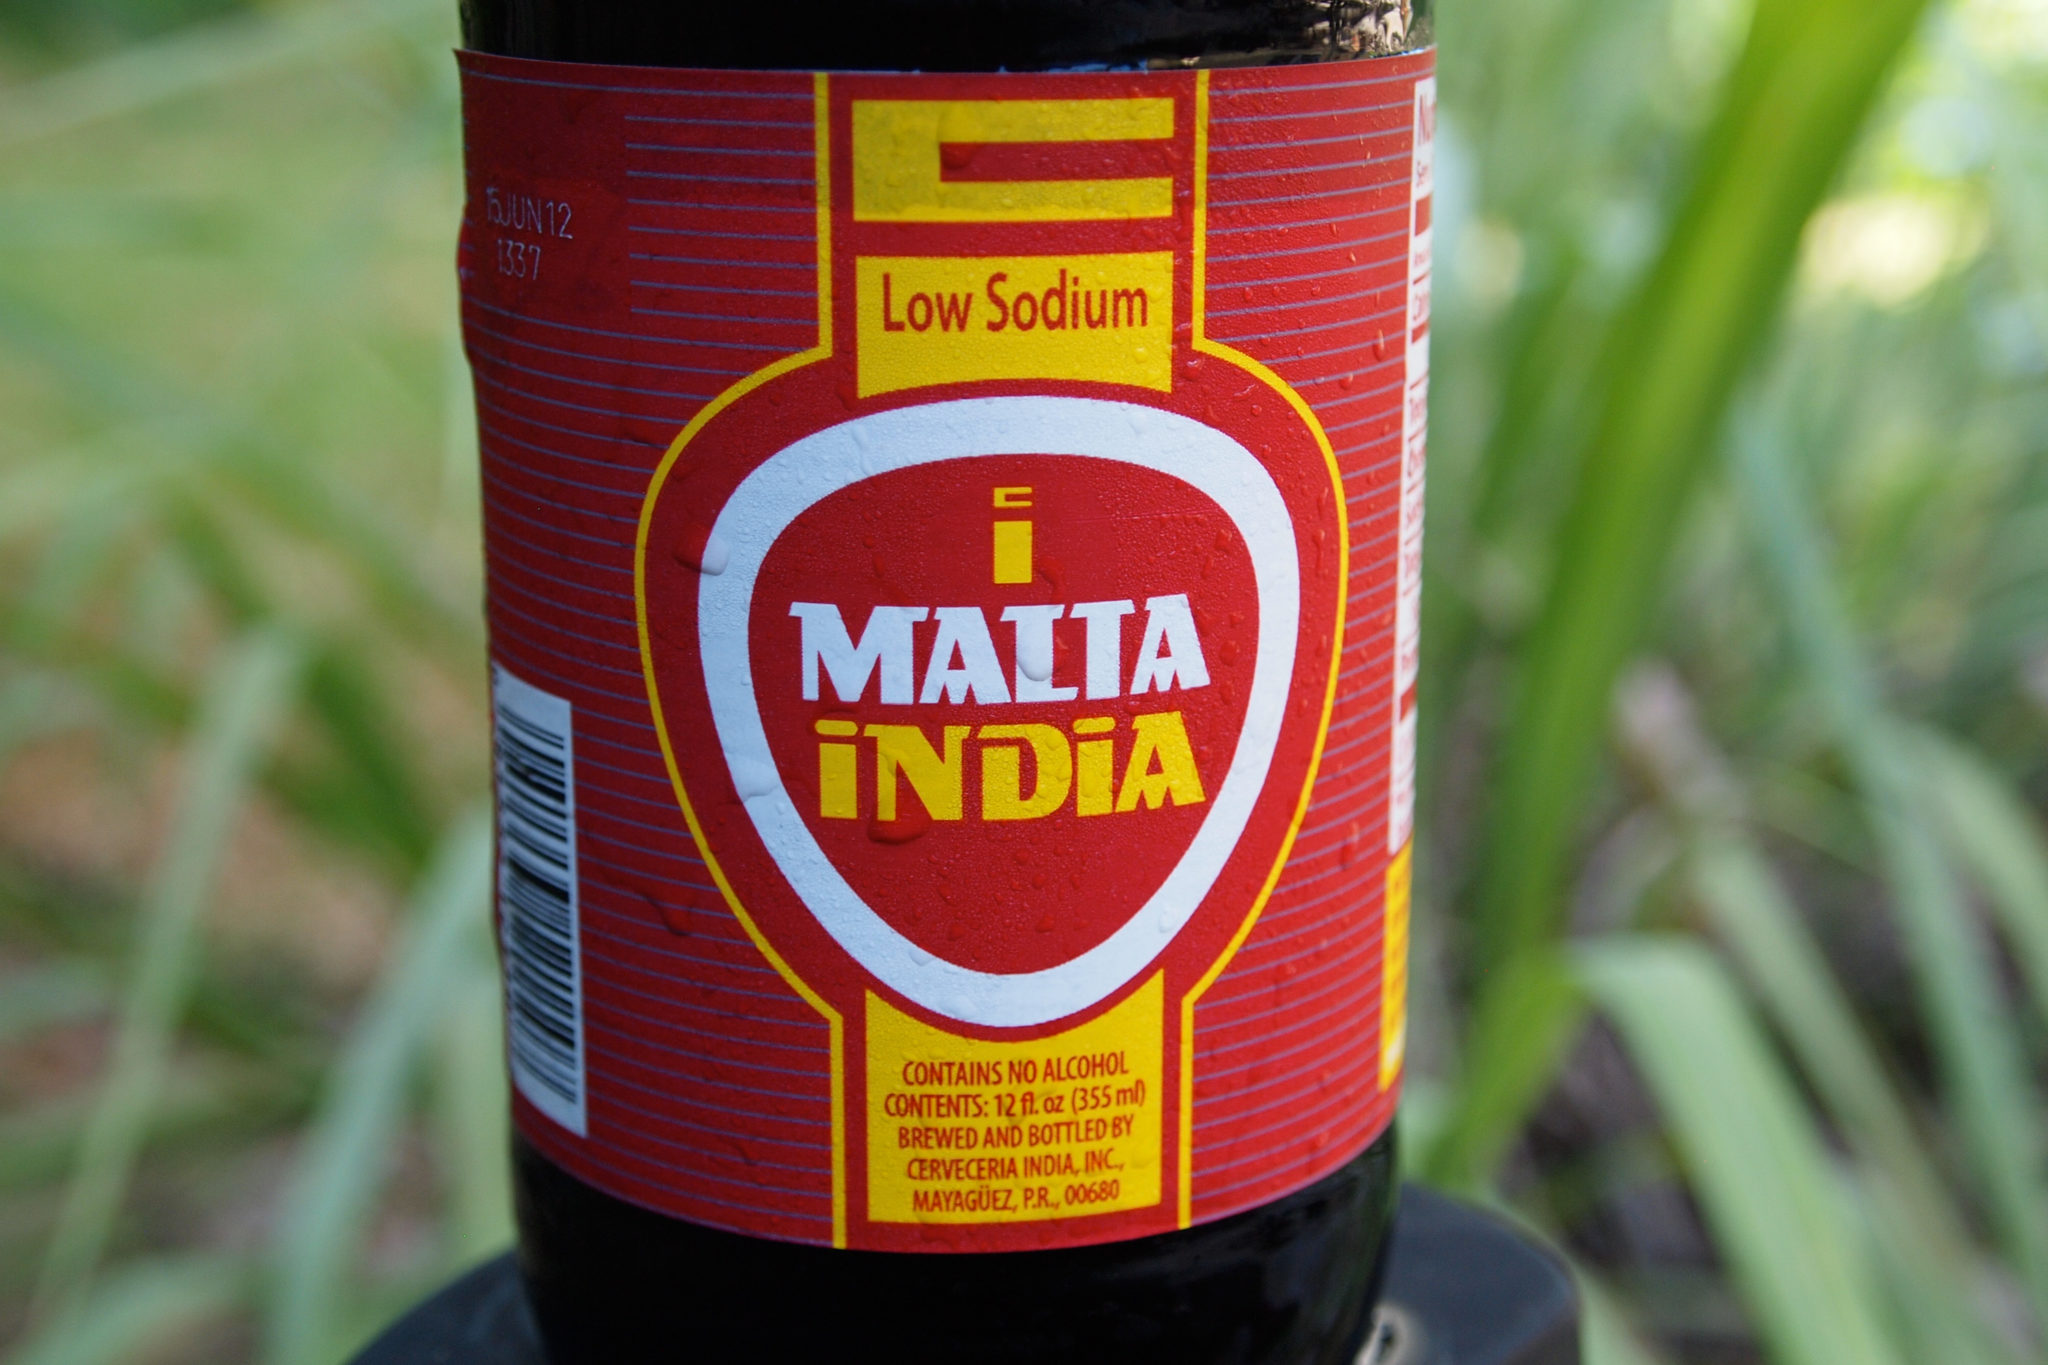 Malta India: Call Me Crazy But I Love This Puerto Rico Drink